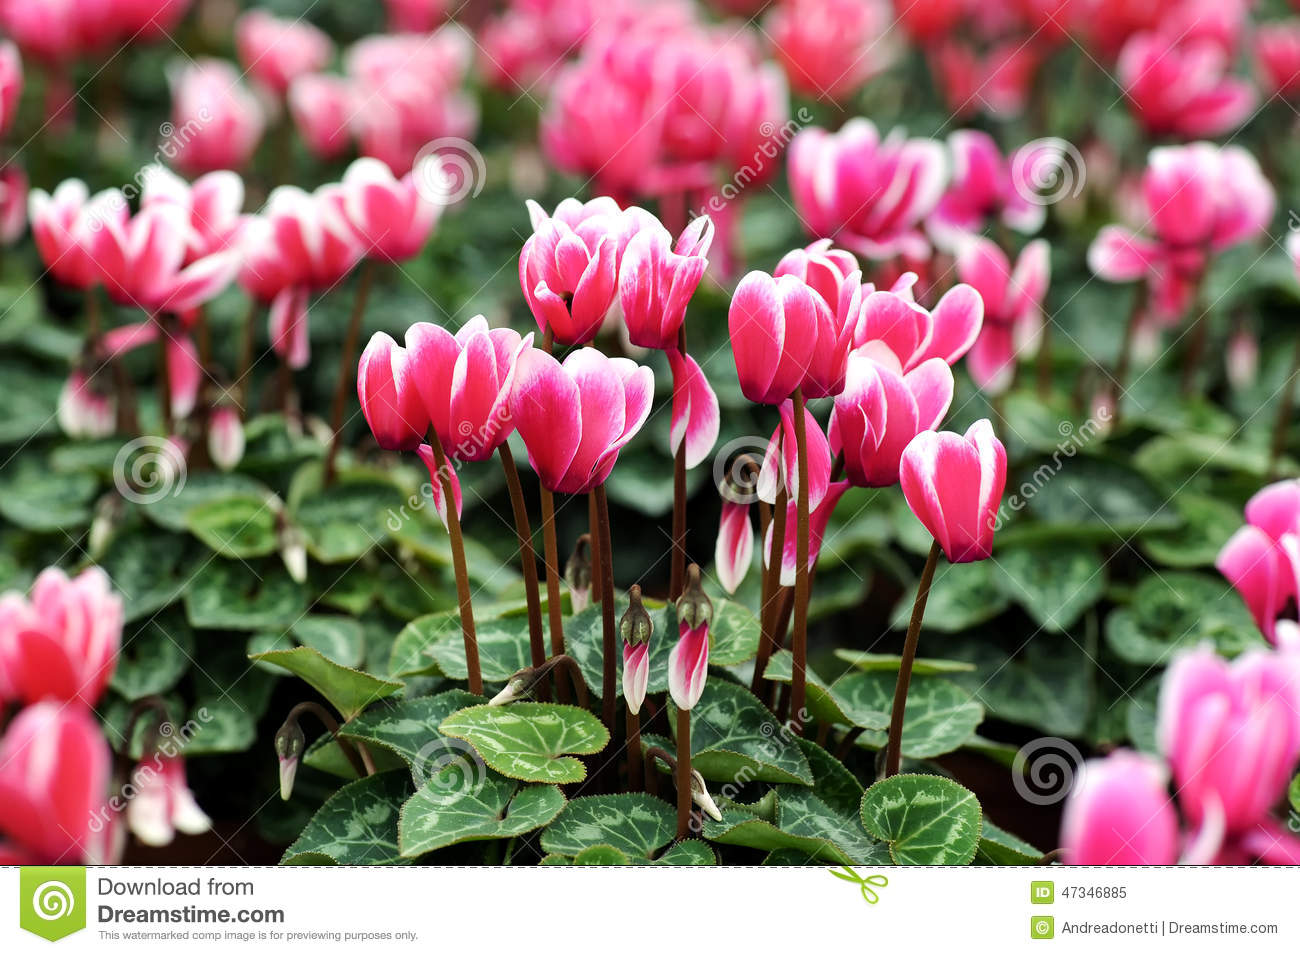 Variegated White And Pink Cyclamen Flowers Stock Image Image Of